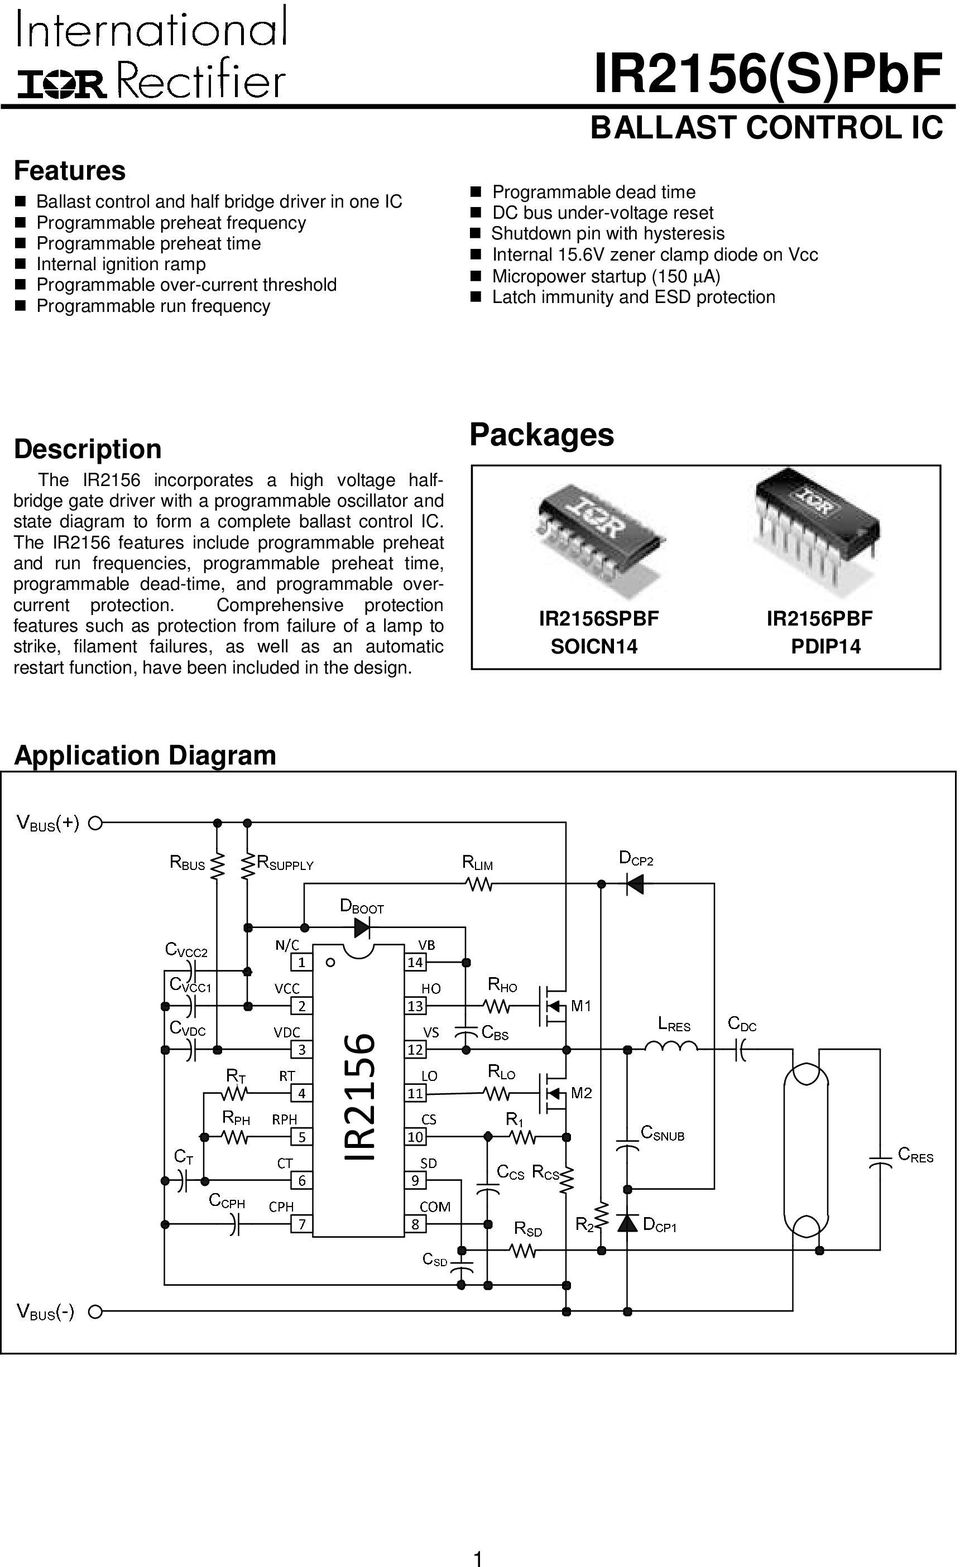 Ir2156pbf Ir2156 Ballast Control Ic Packages Features Description Ir2110 High Speed Power Mosfet Lead Assignments And Datasheet 6v Zener Clamp Diode On Vcc Micropower Startup 150 A Latch Immunity Esd